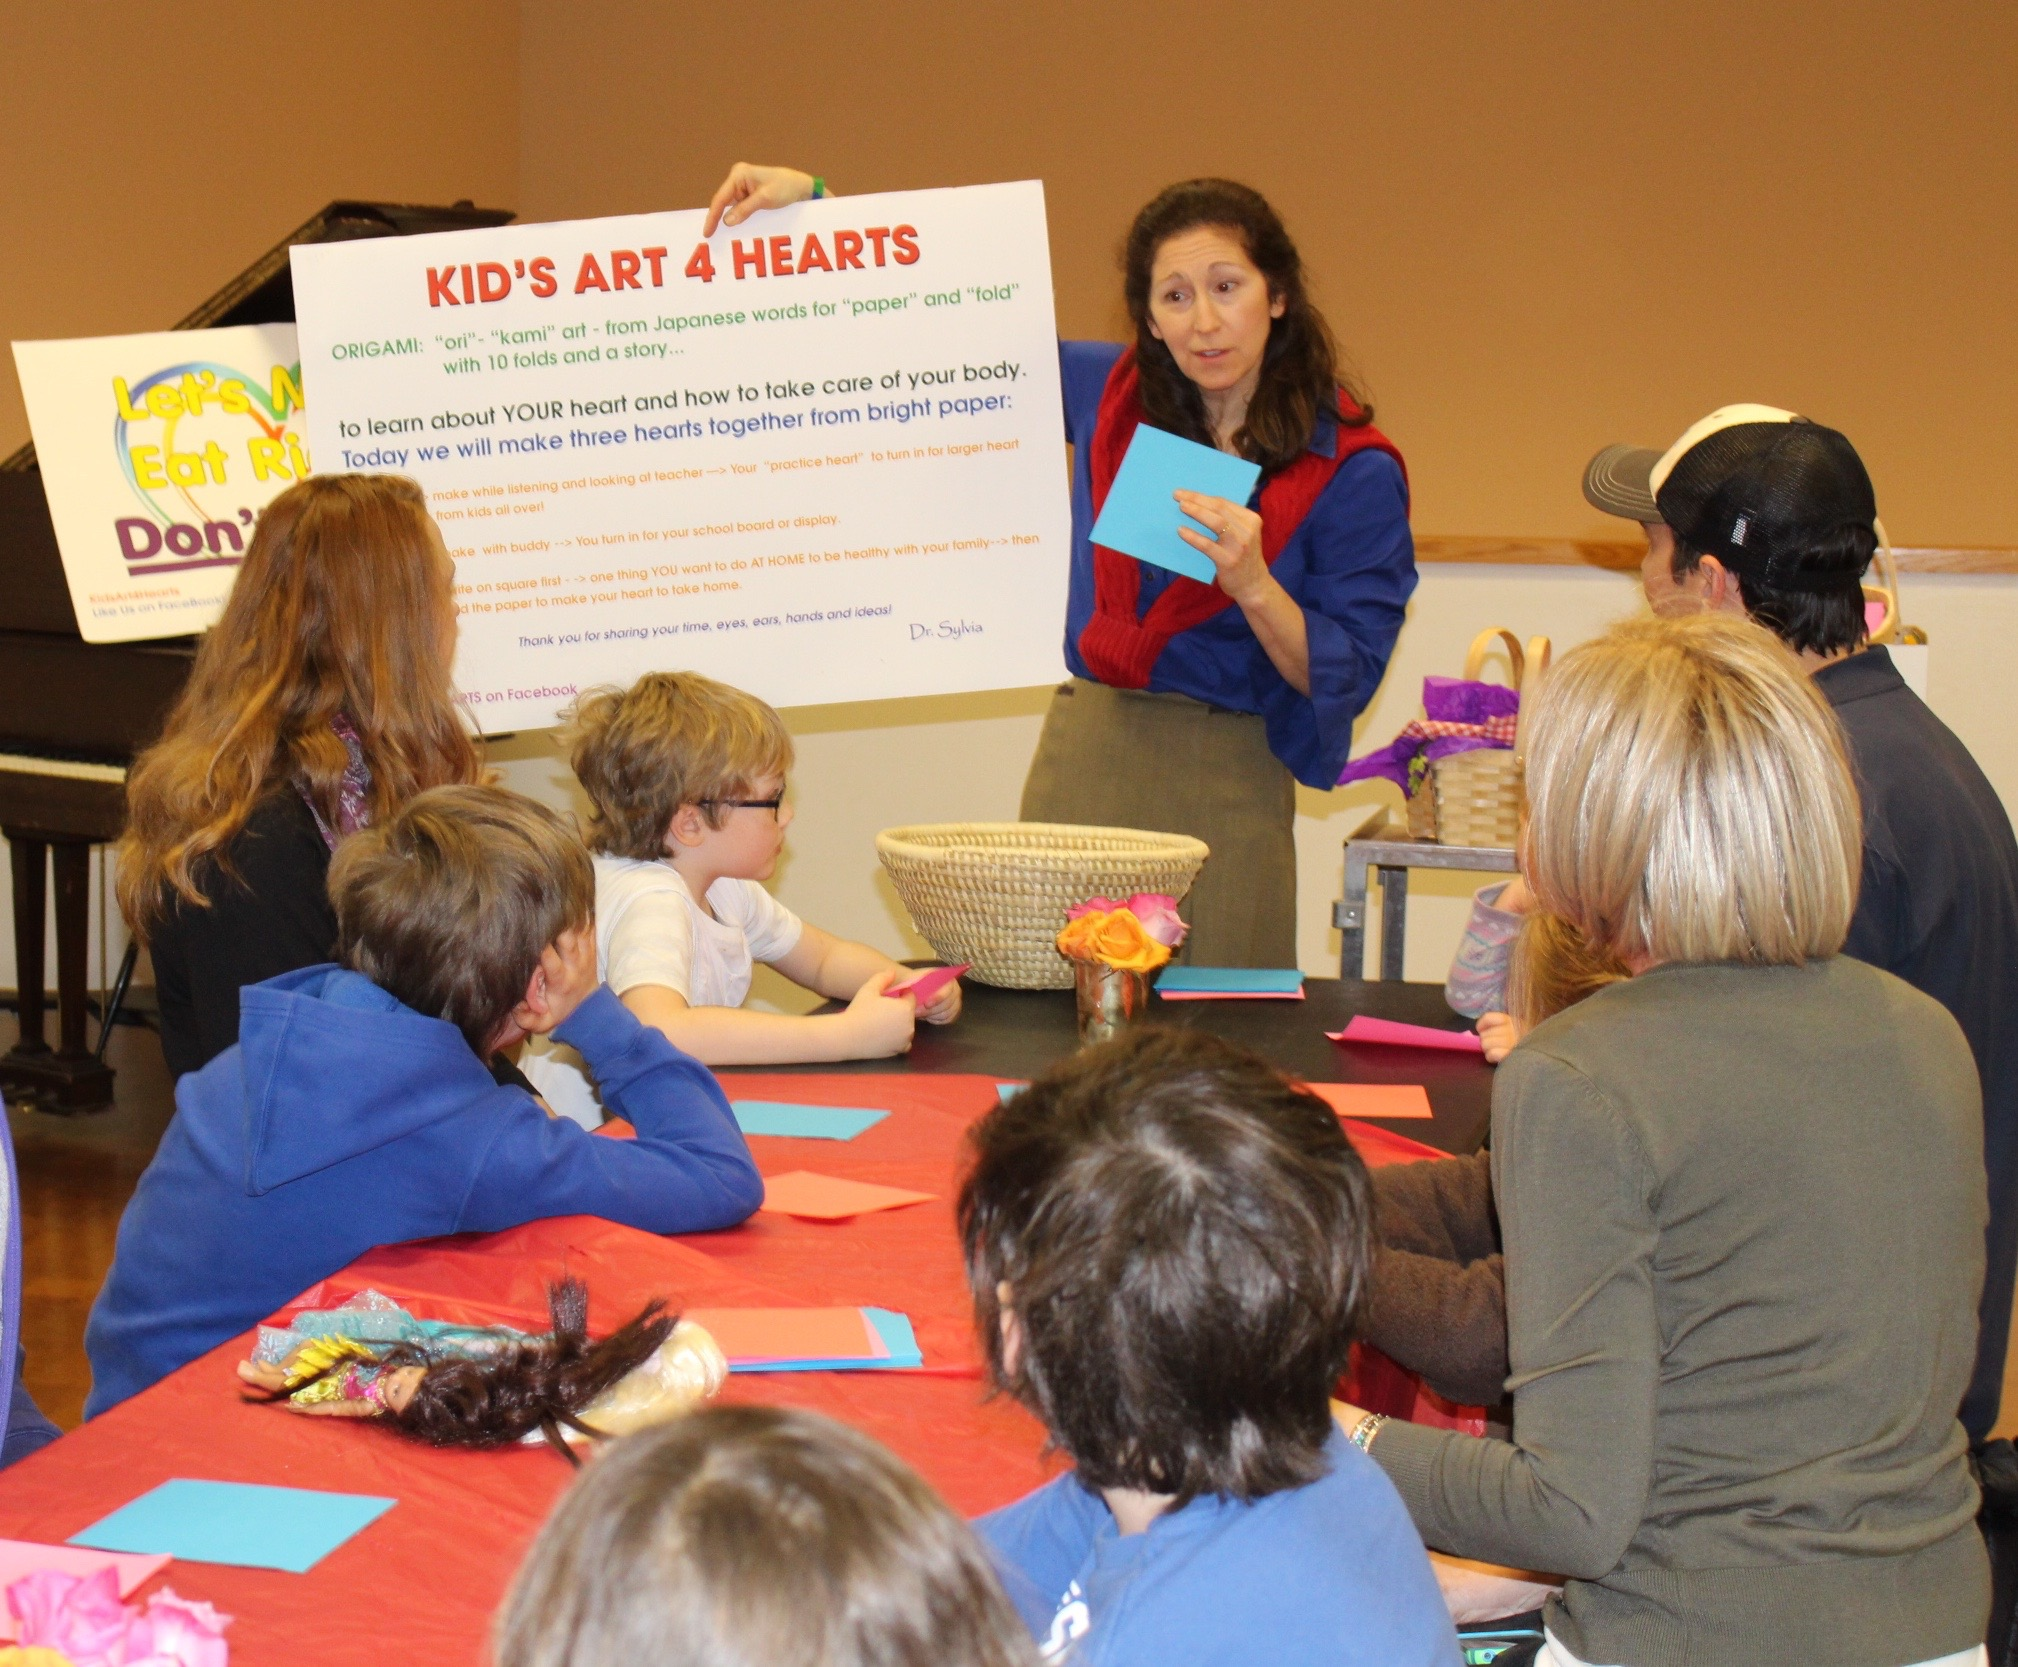 """Dr Cerel-Suhl teaching a family workshop at the University of Kentucky Art Museum, """"Heart and Home""""following a tour of the exhibit """"Open House: works from the Weiland Collection"""" with Director Stuart Horodner.  February 2016"""